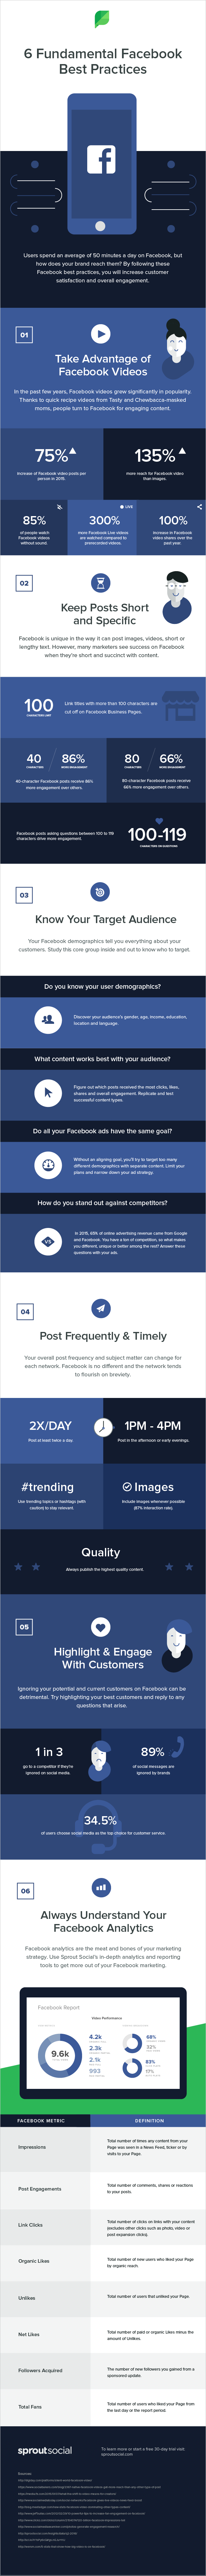 A Beginners Guide to Marketing on Facebook: 6 Fundamental Best Practices [Infographic]